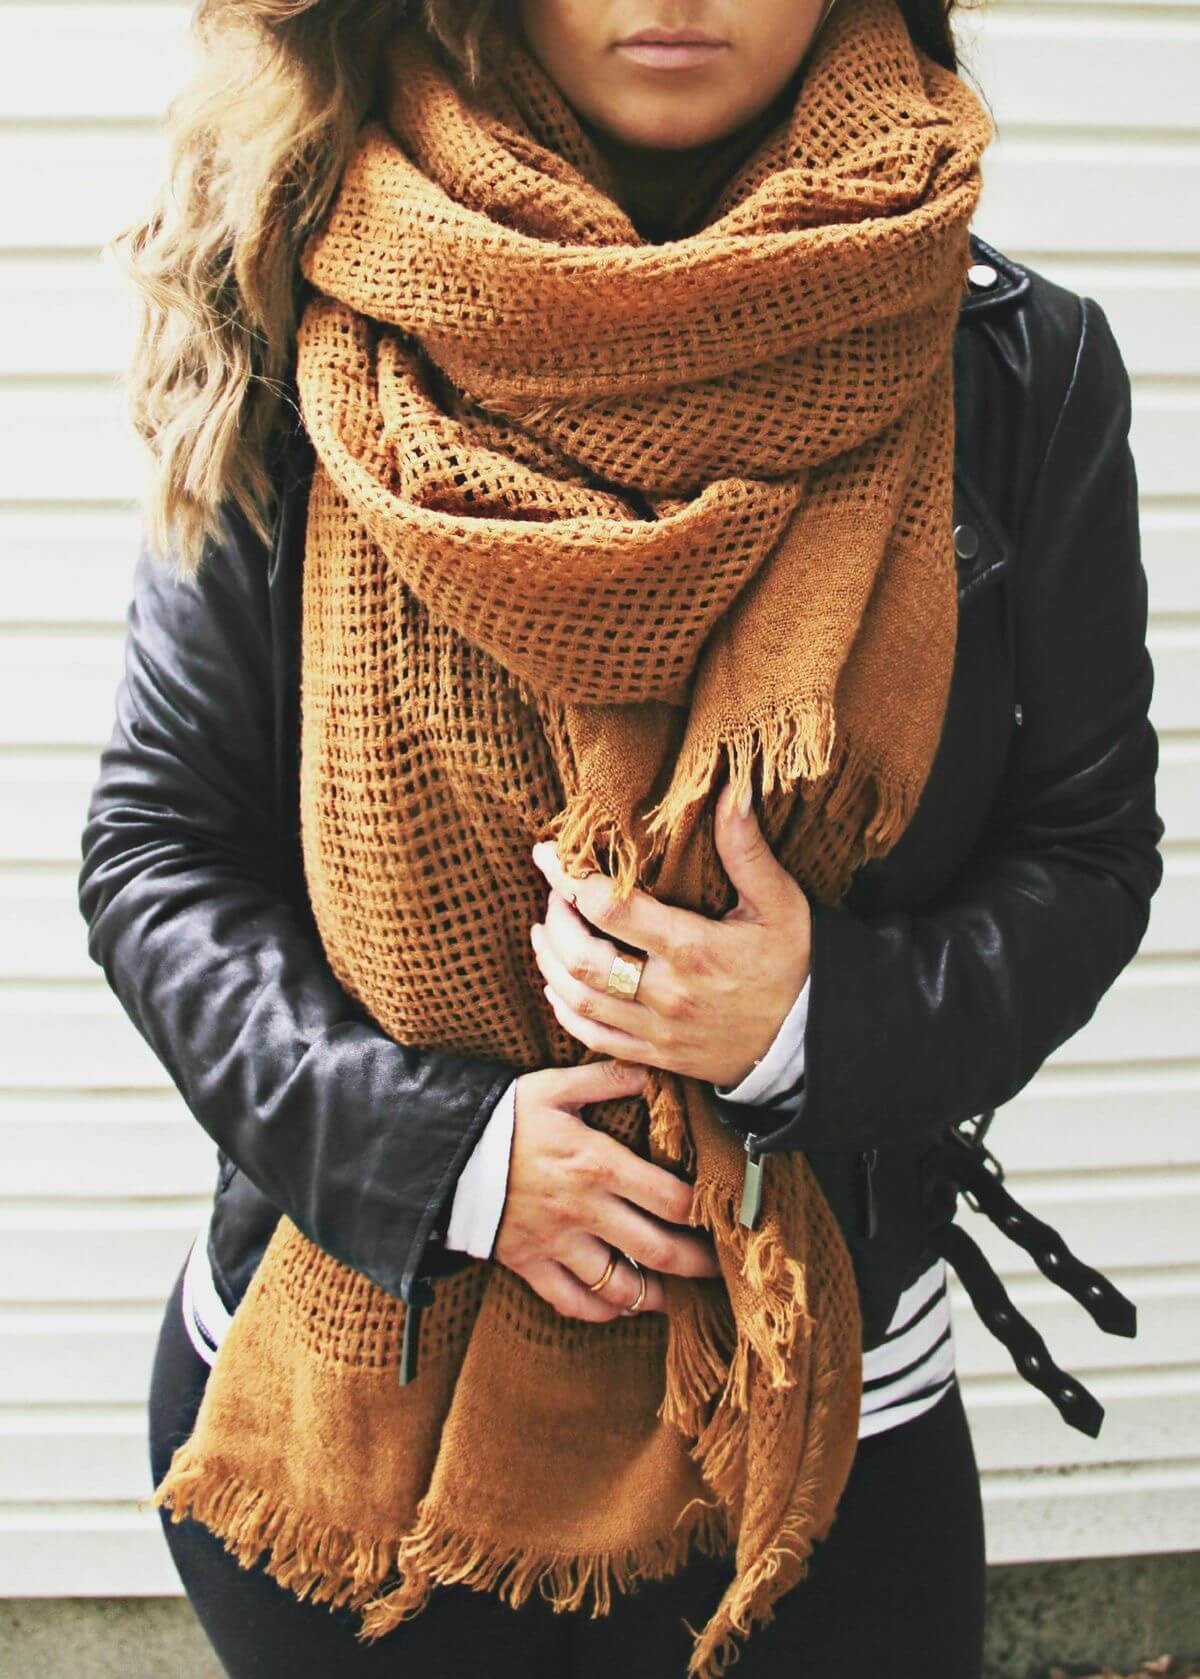 Tawny Open-knit Blanket Scarf With Leather Jacket